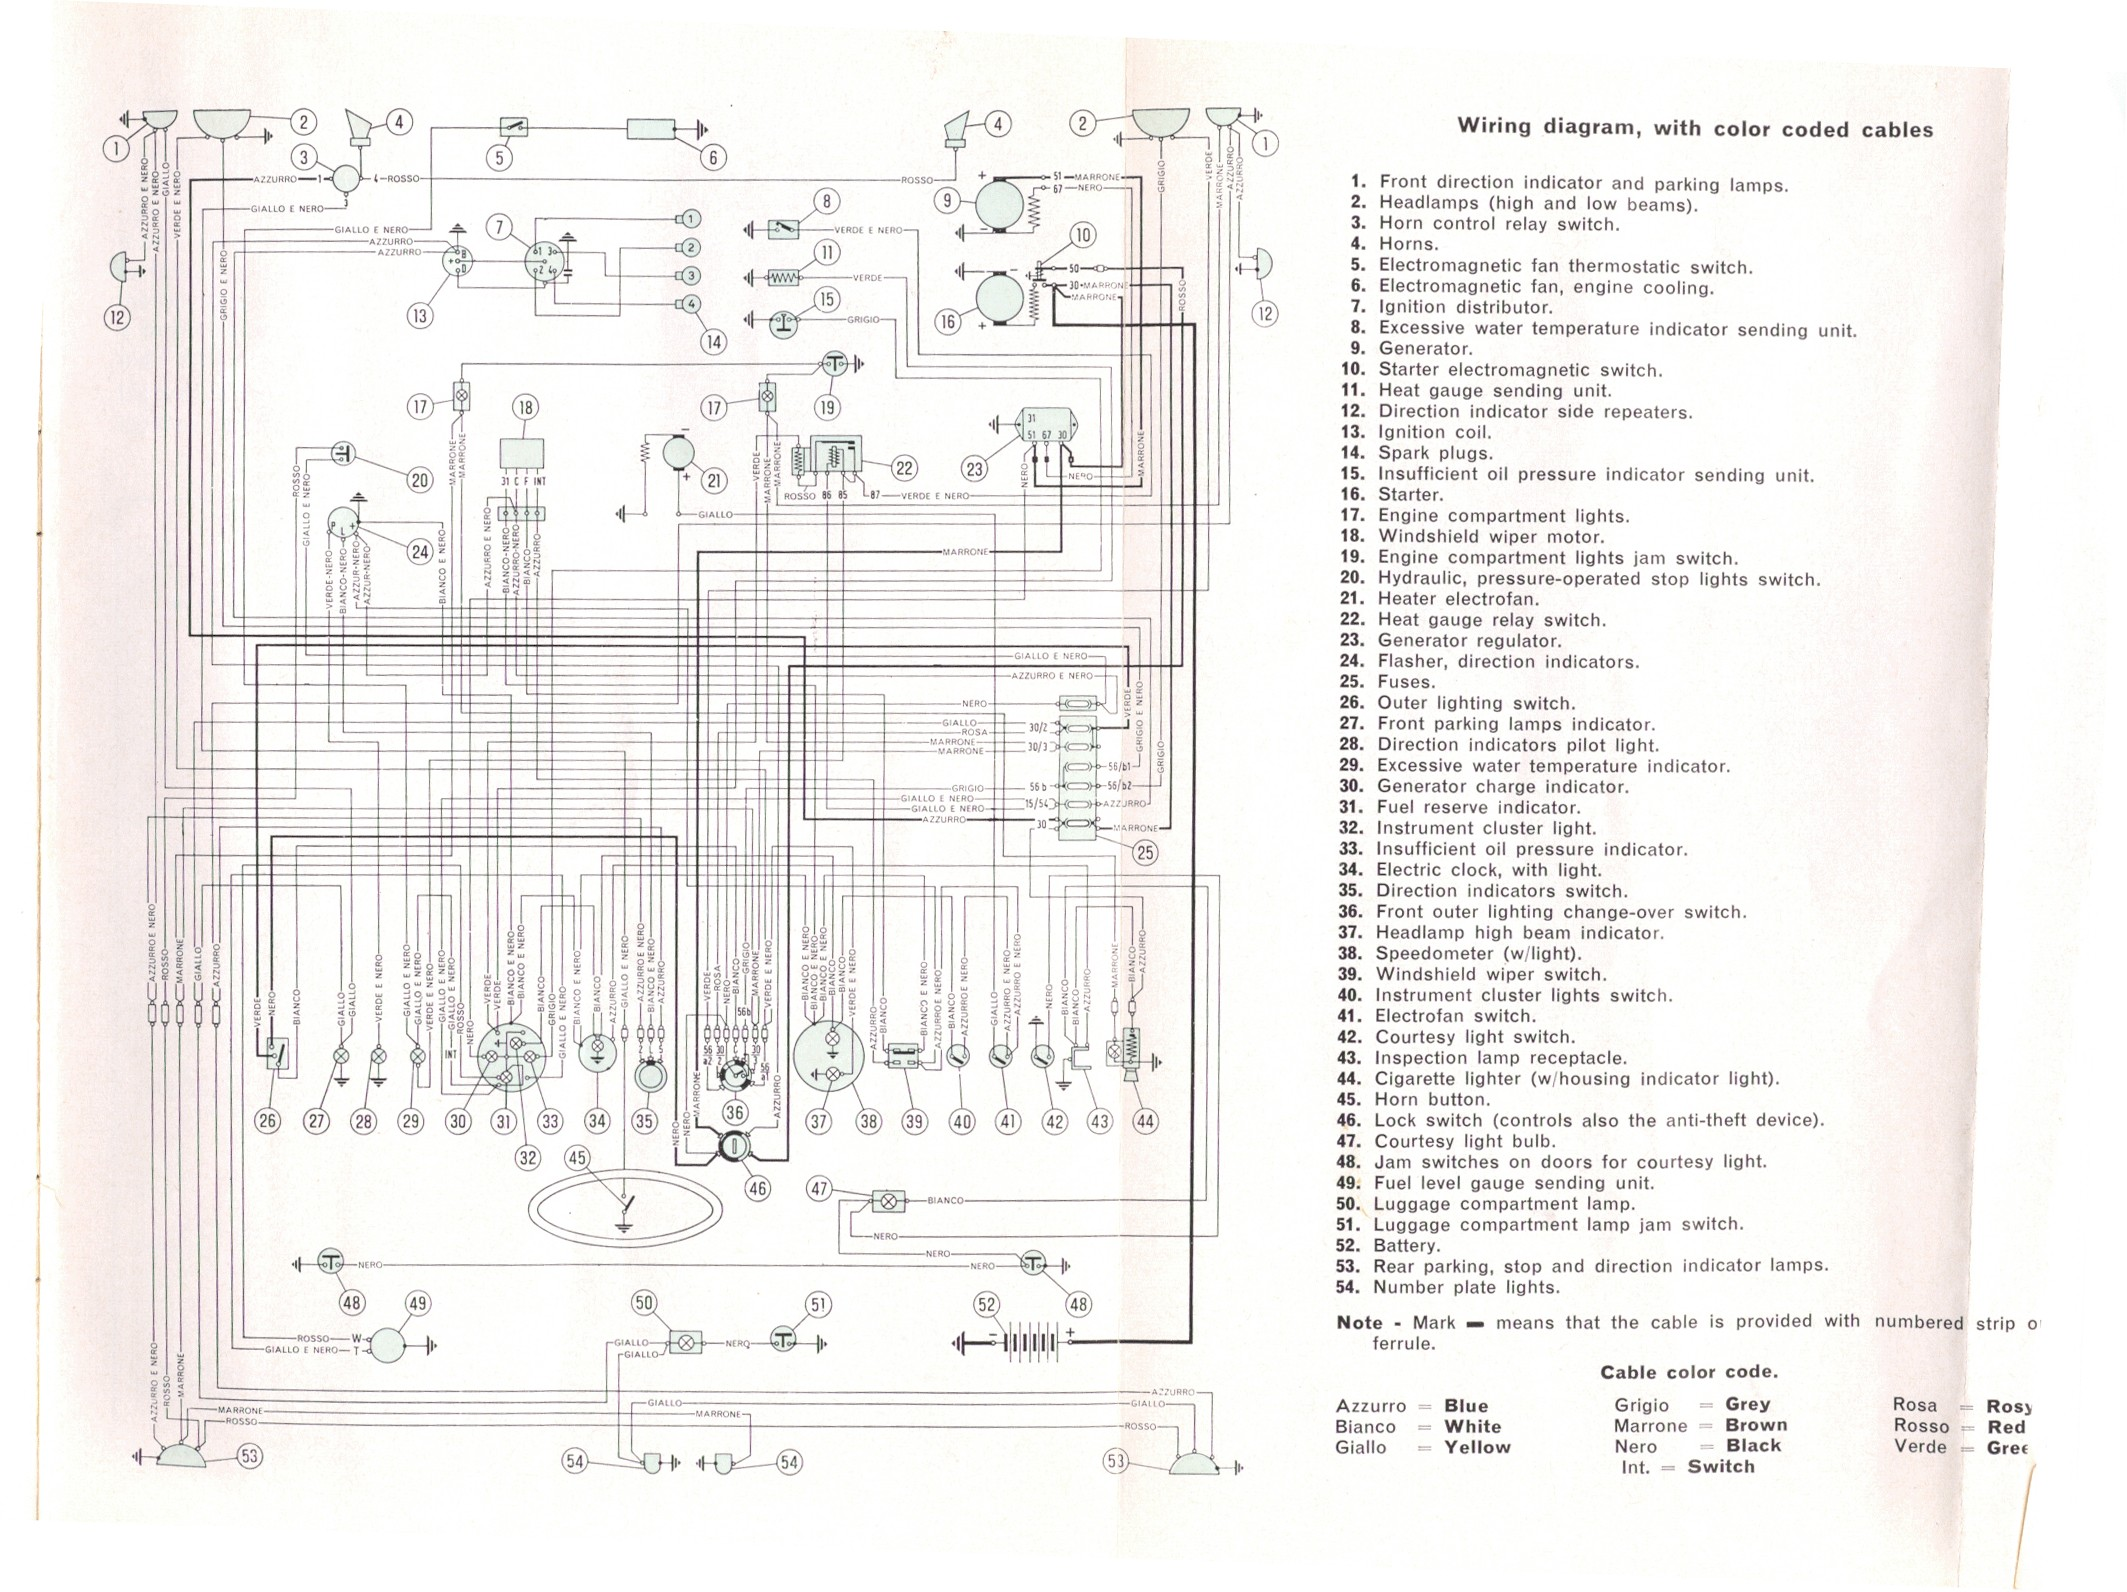 fiat 600 wiring diagram wiring diagram detailedfiat 600 engine diagram change your idea with wiring diagram design \\u2022 subaru baja wiring diagram fiat 600 wiring diagram